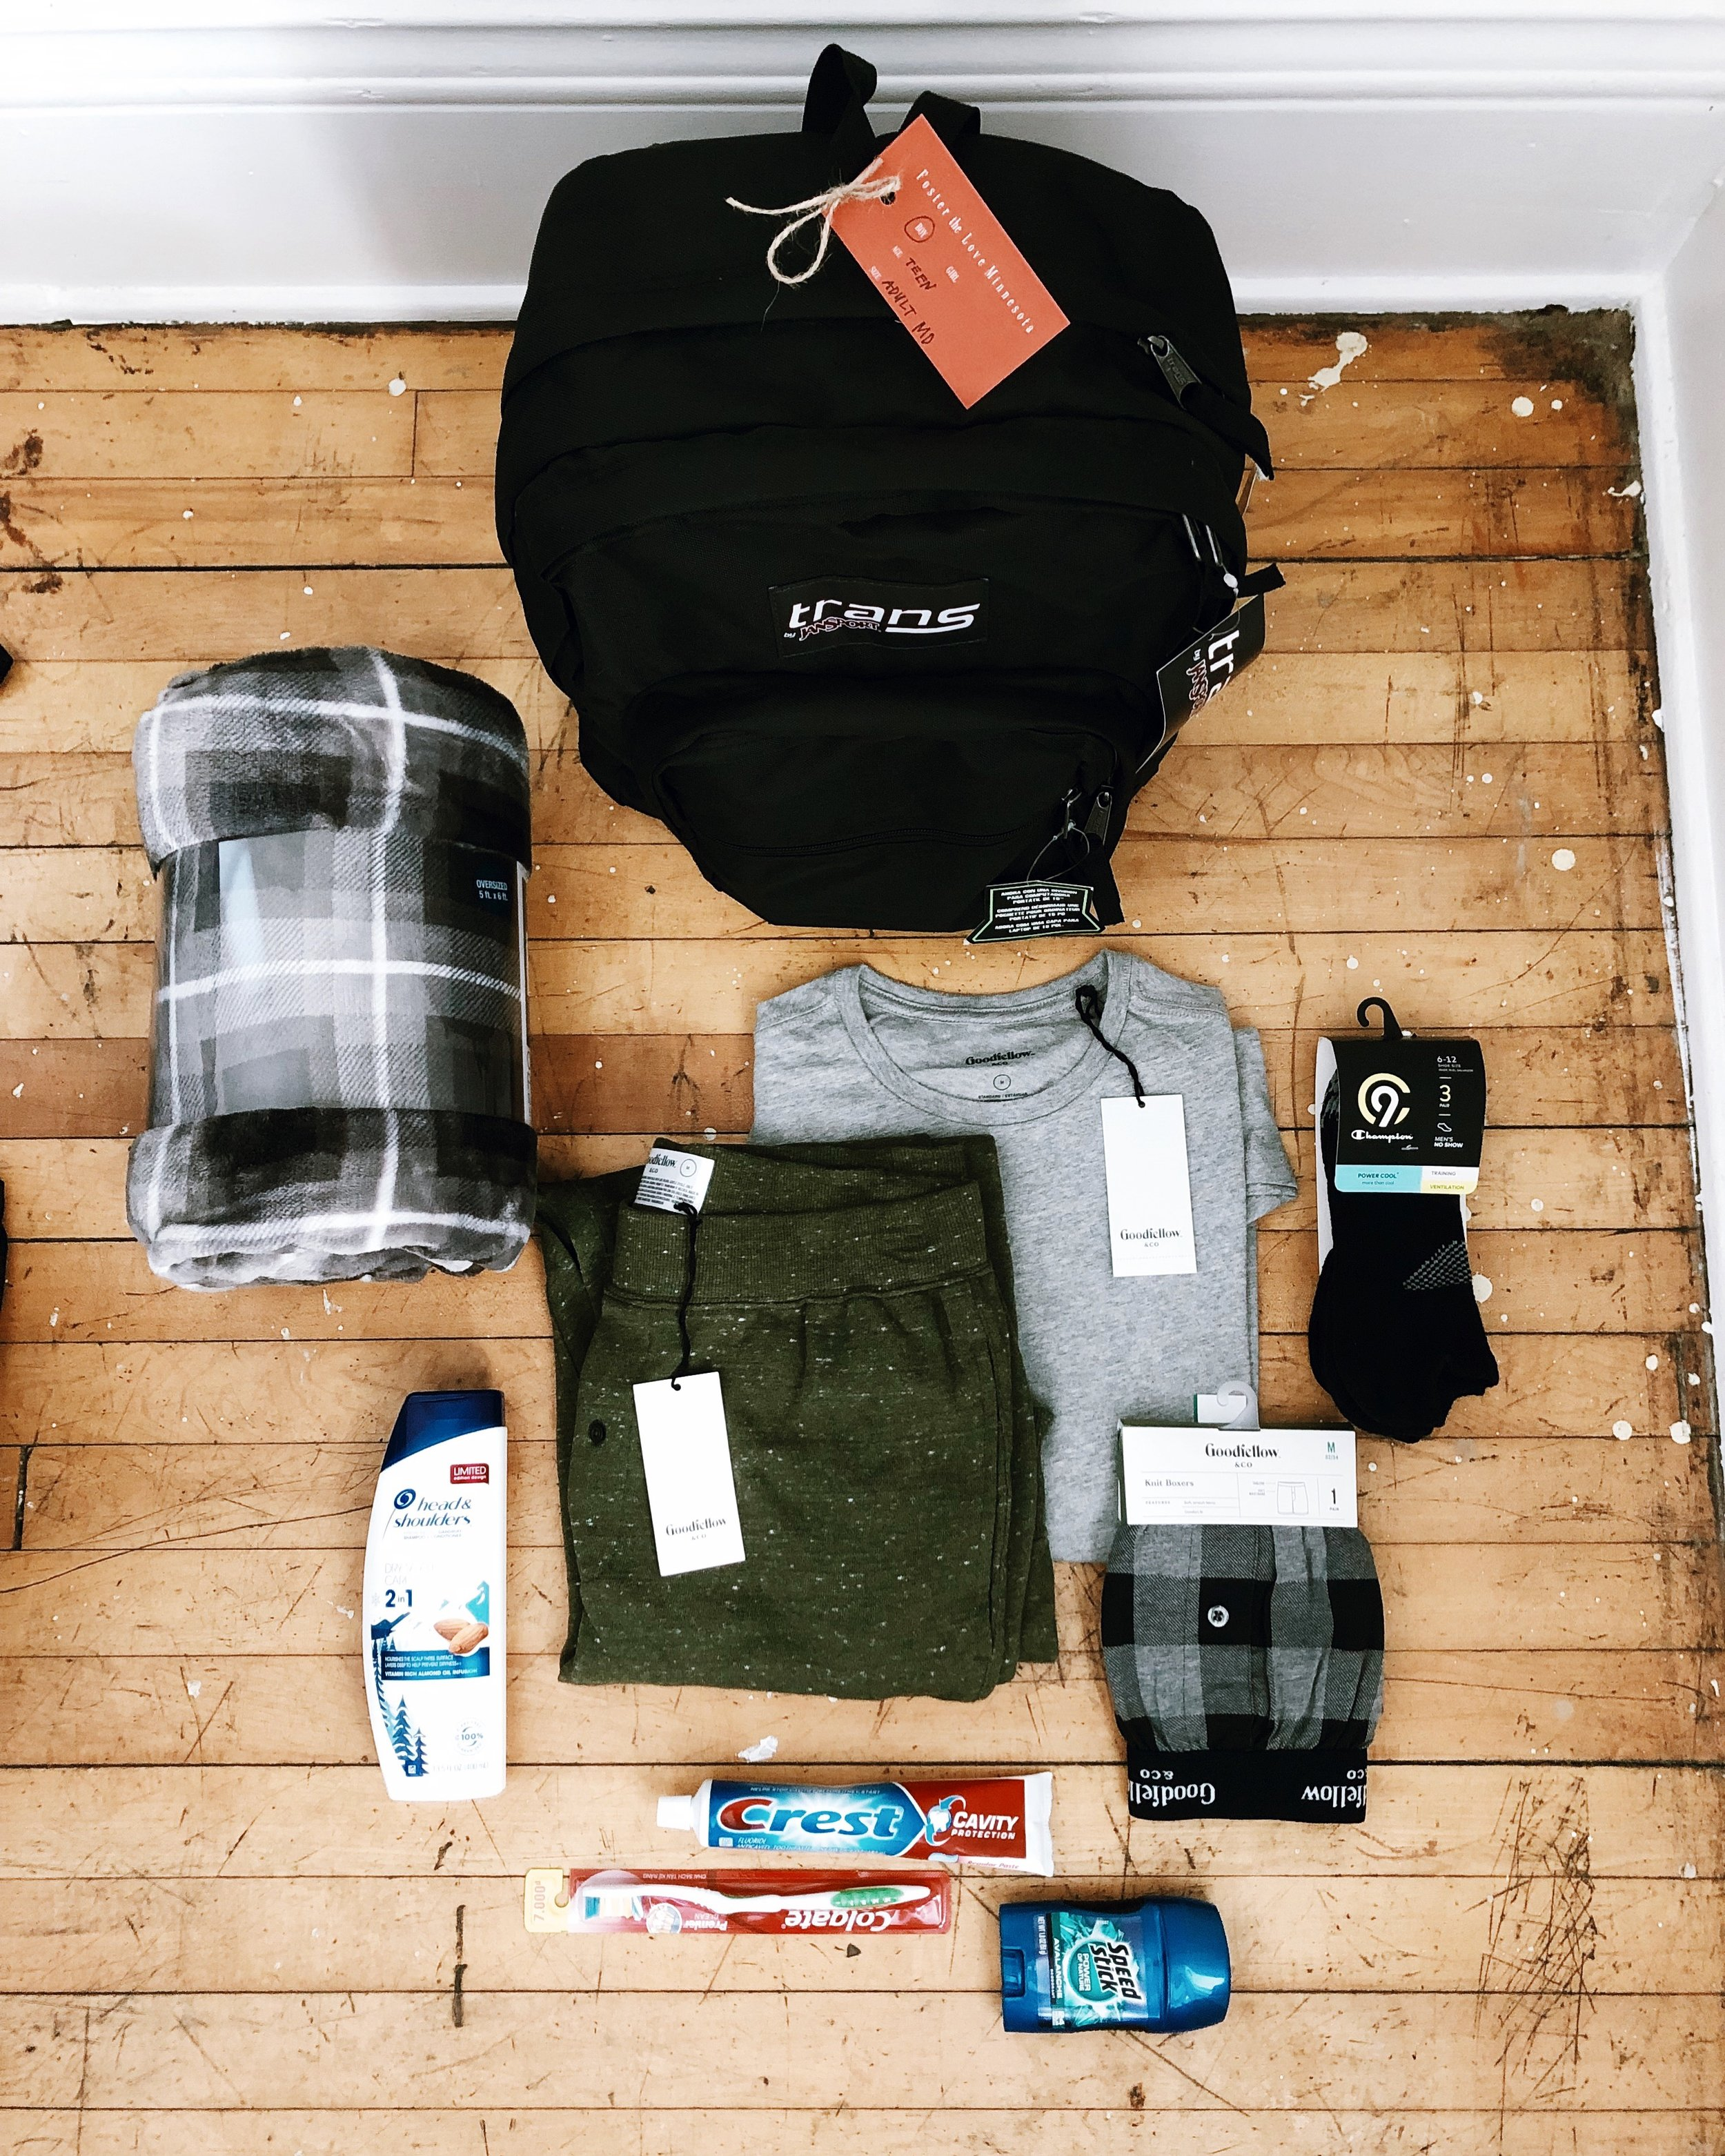 Male teen placement bag; adult size clothing.